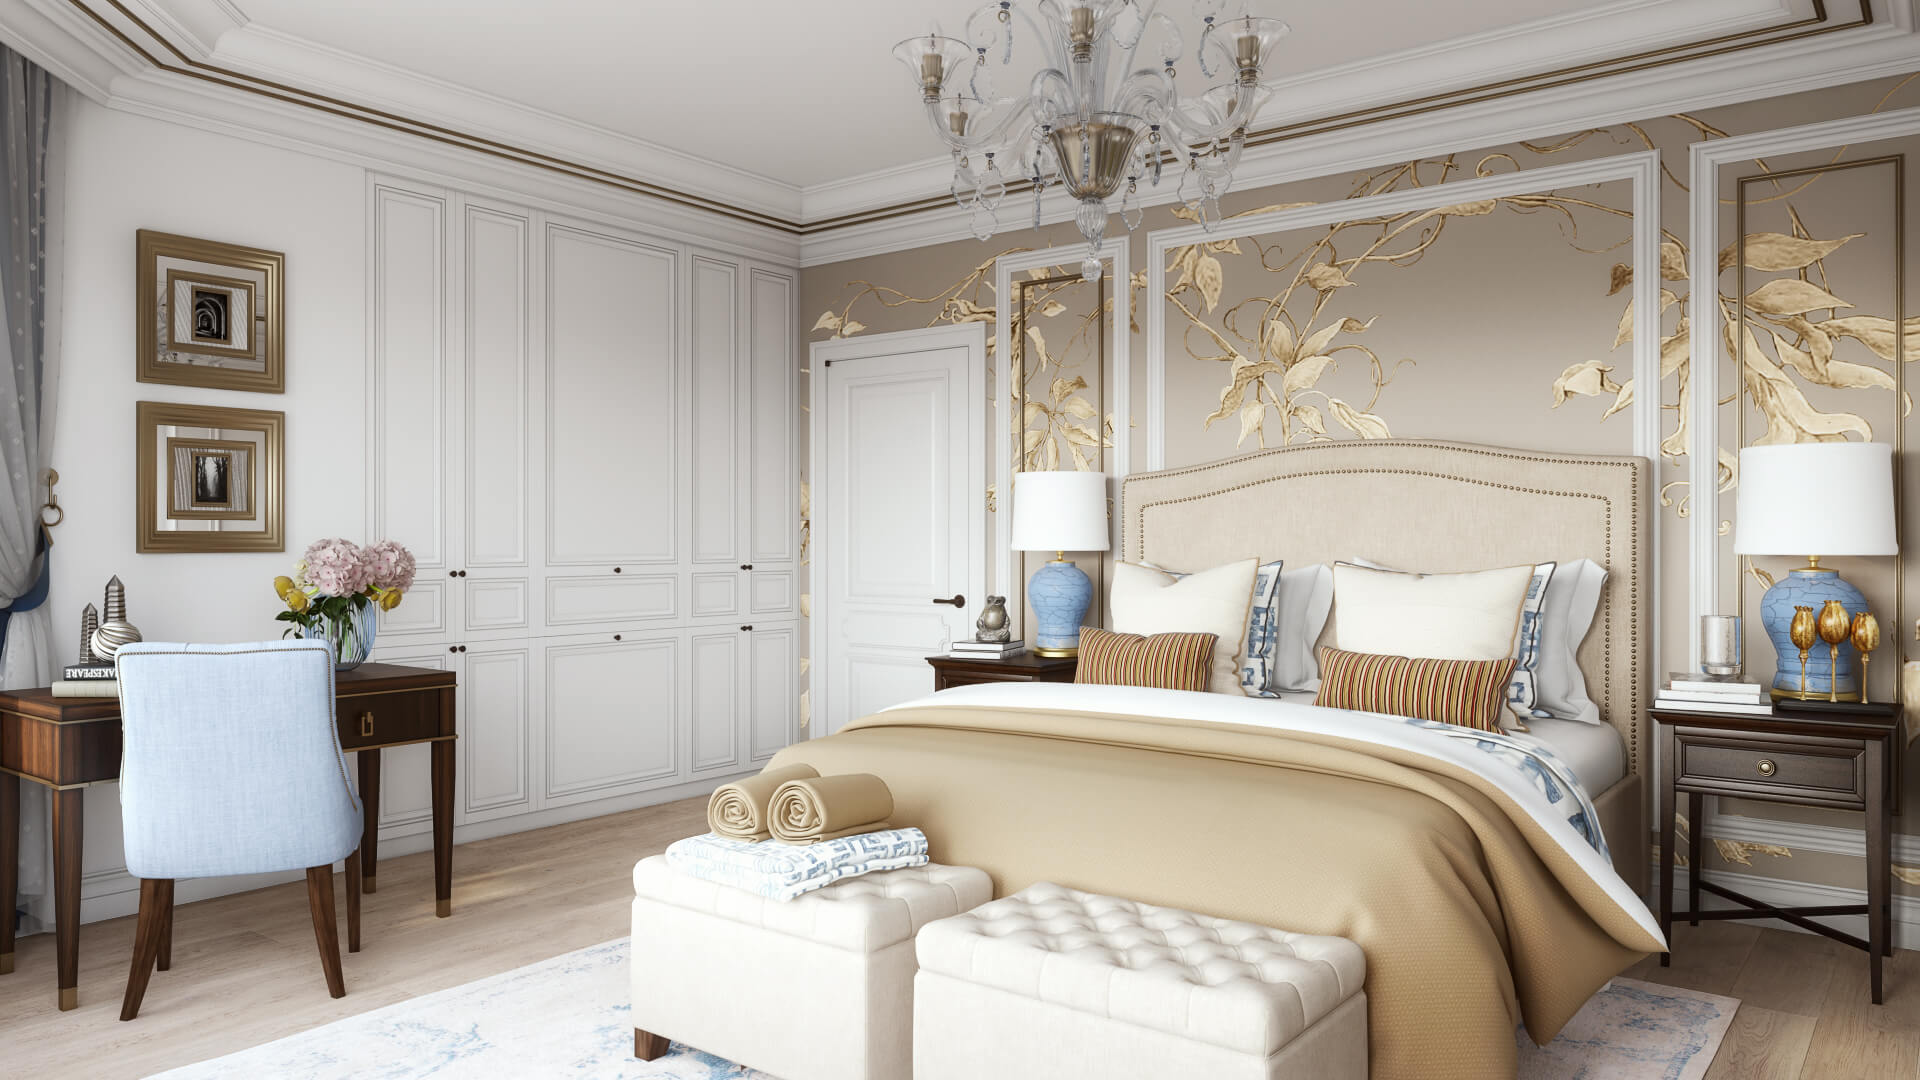 3D Visualization of a Sophisticated Interior Design